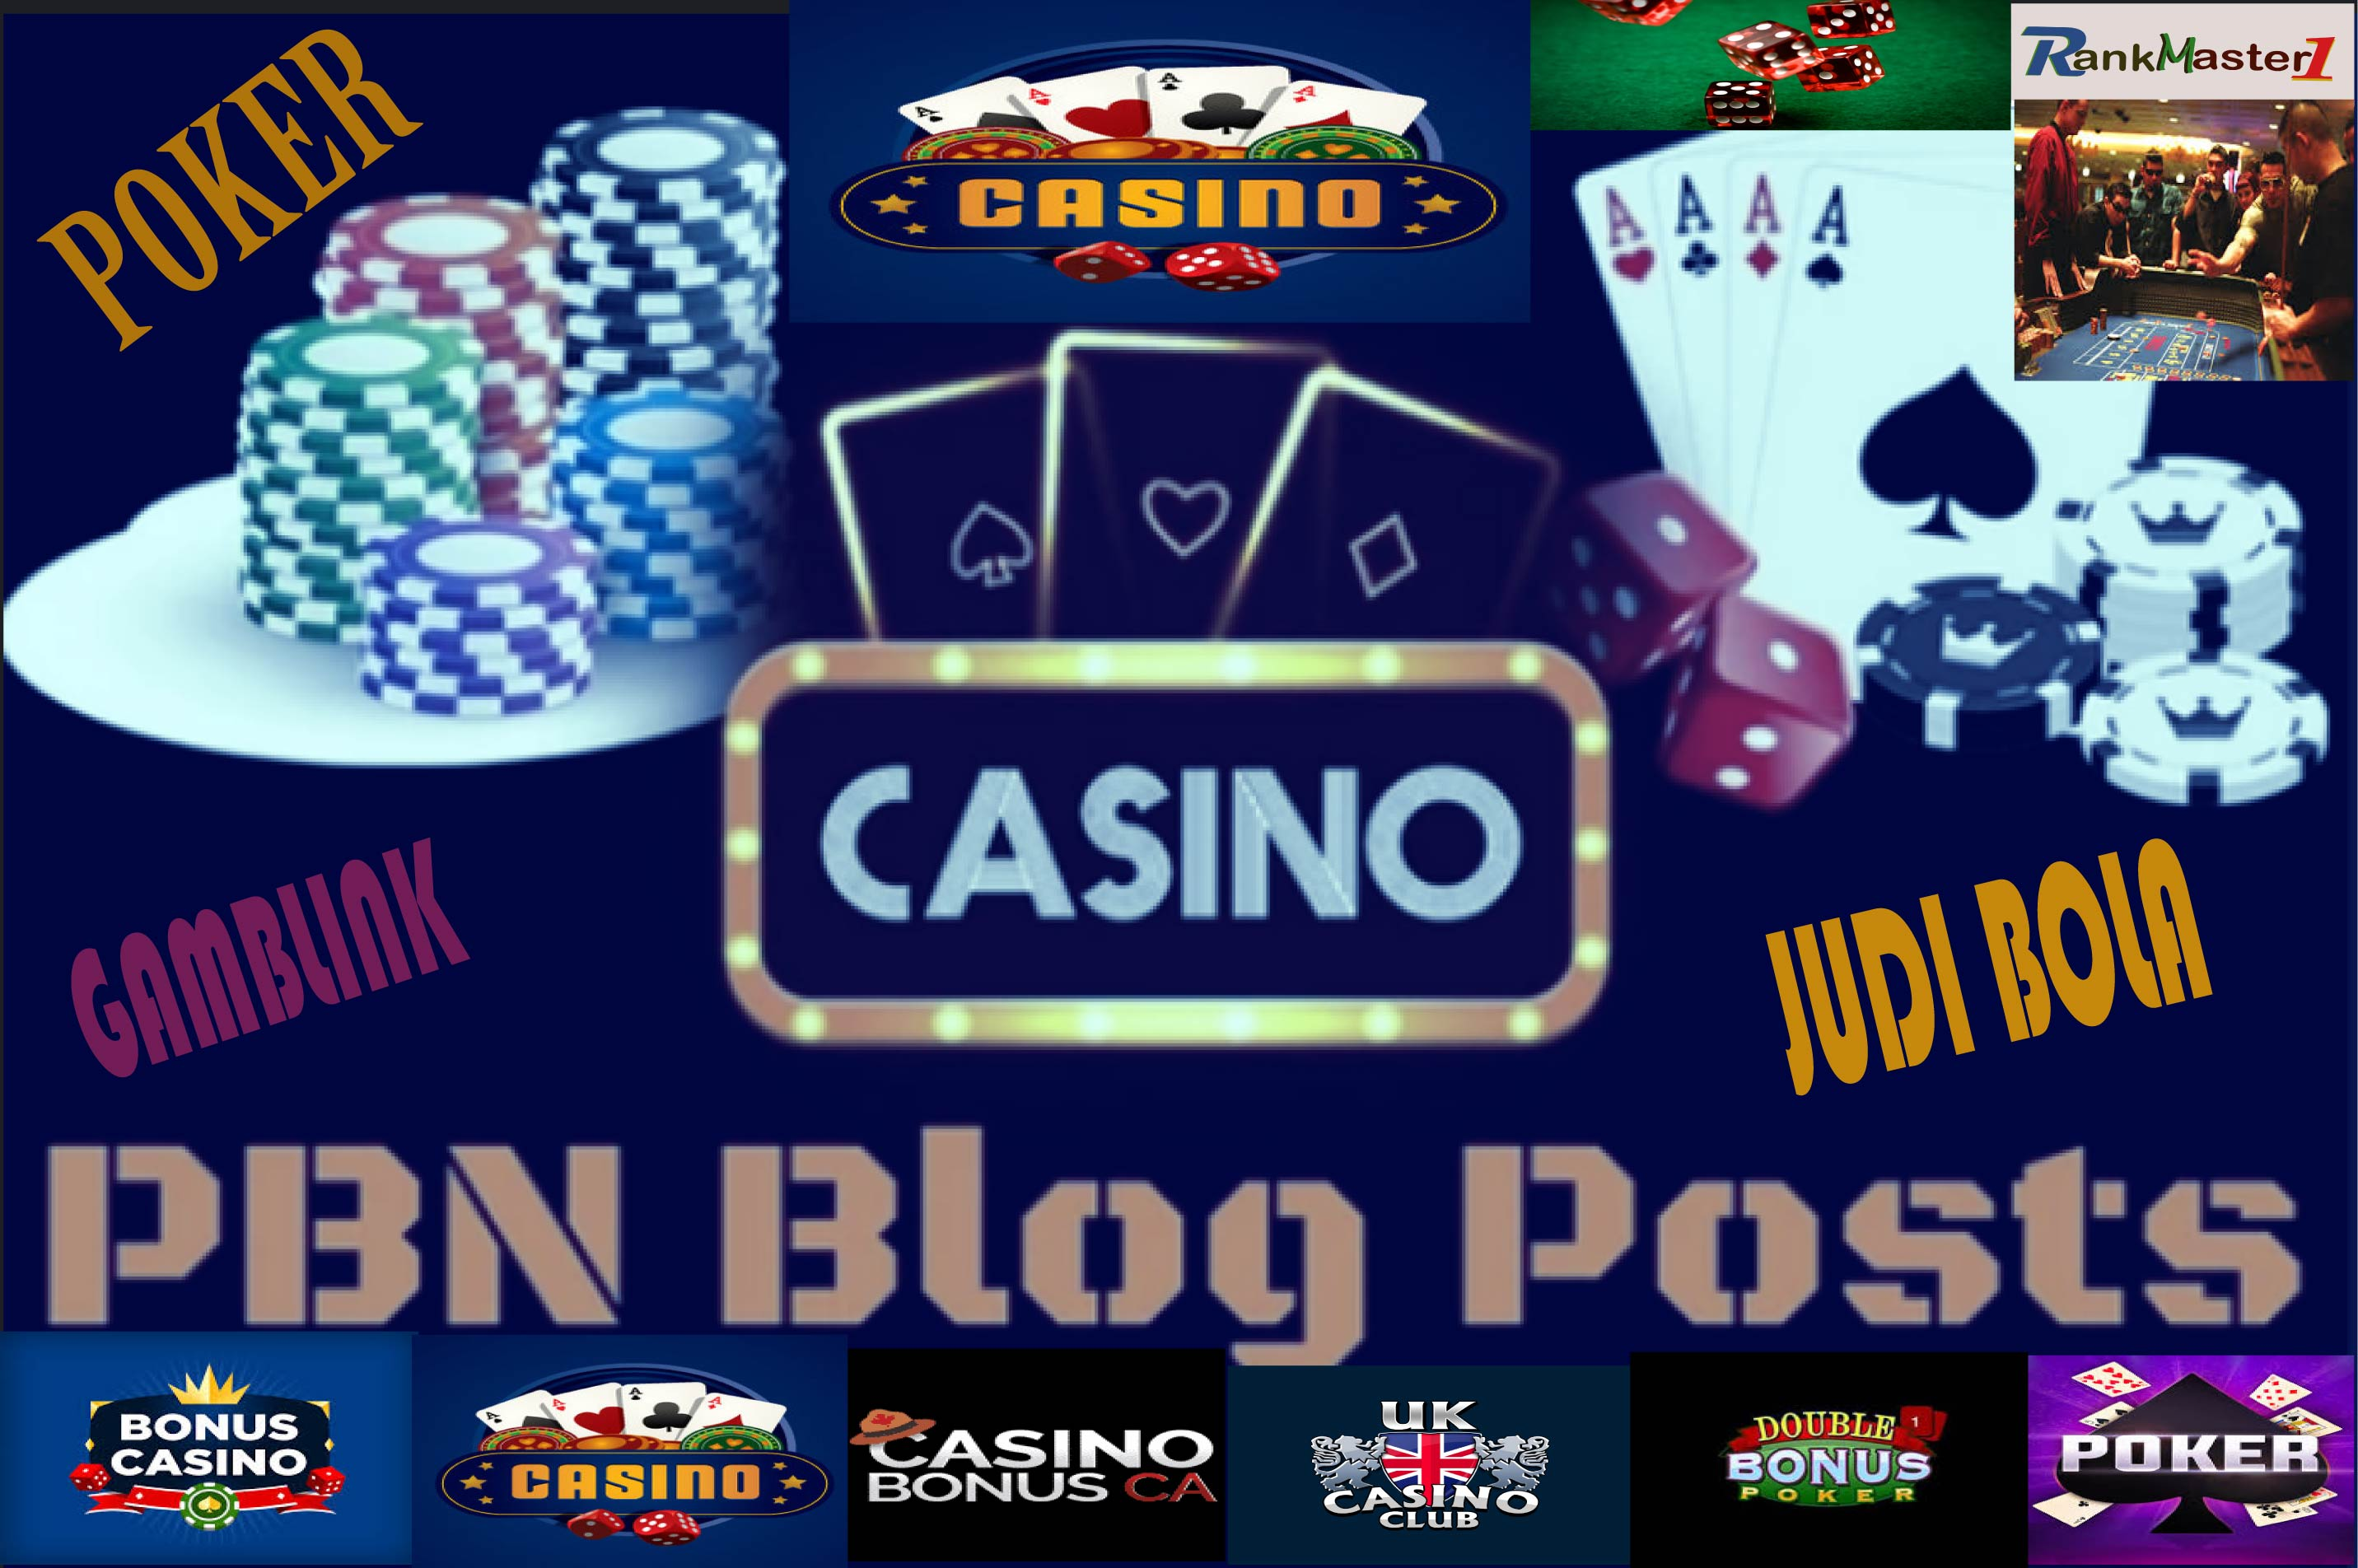 50 PBNs Blogpost From Casino,  Gambling,  Poker,  Judi Related High DA Blogger Blog Post Increase Google Ranking And Index Free